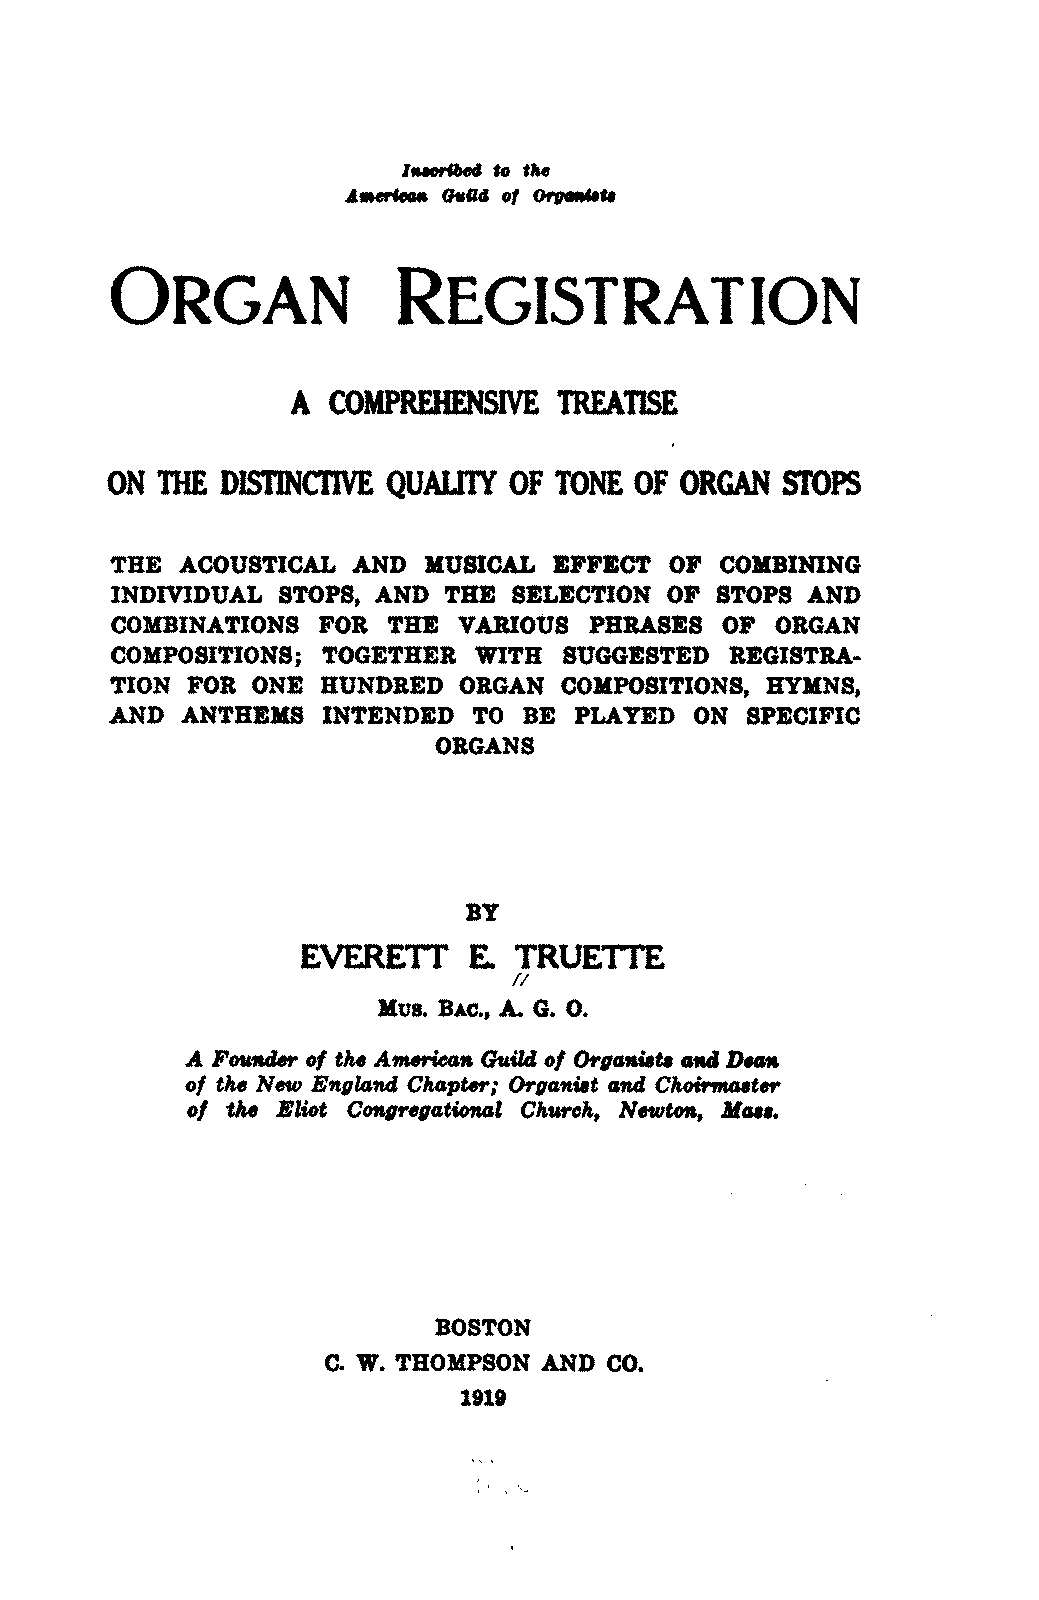 PMLP435294-EETruette Organ Registration ocr.pdf